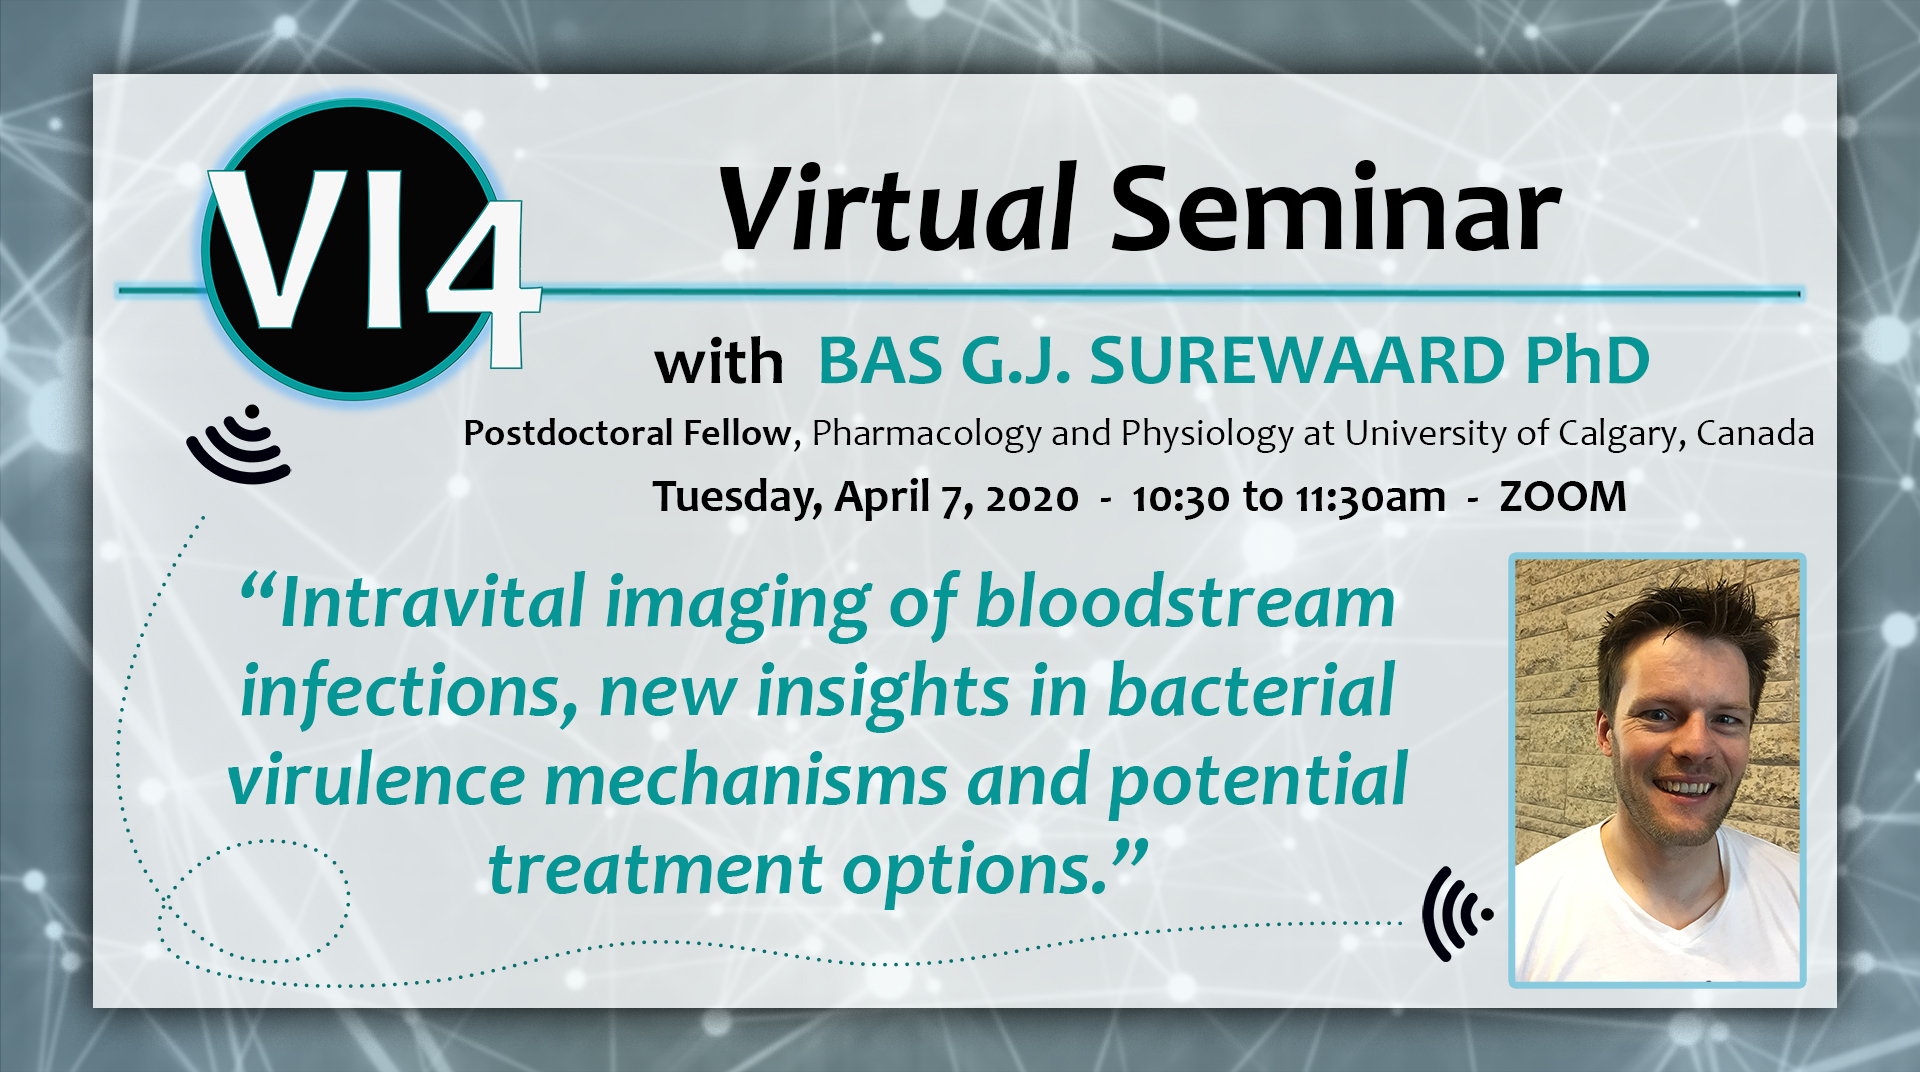 Virtual VI4 Seminar with Bas G.J. Surewaard, Ph.D. on April 7th on Zoom! See the VI4 newsletter for webinar info.